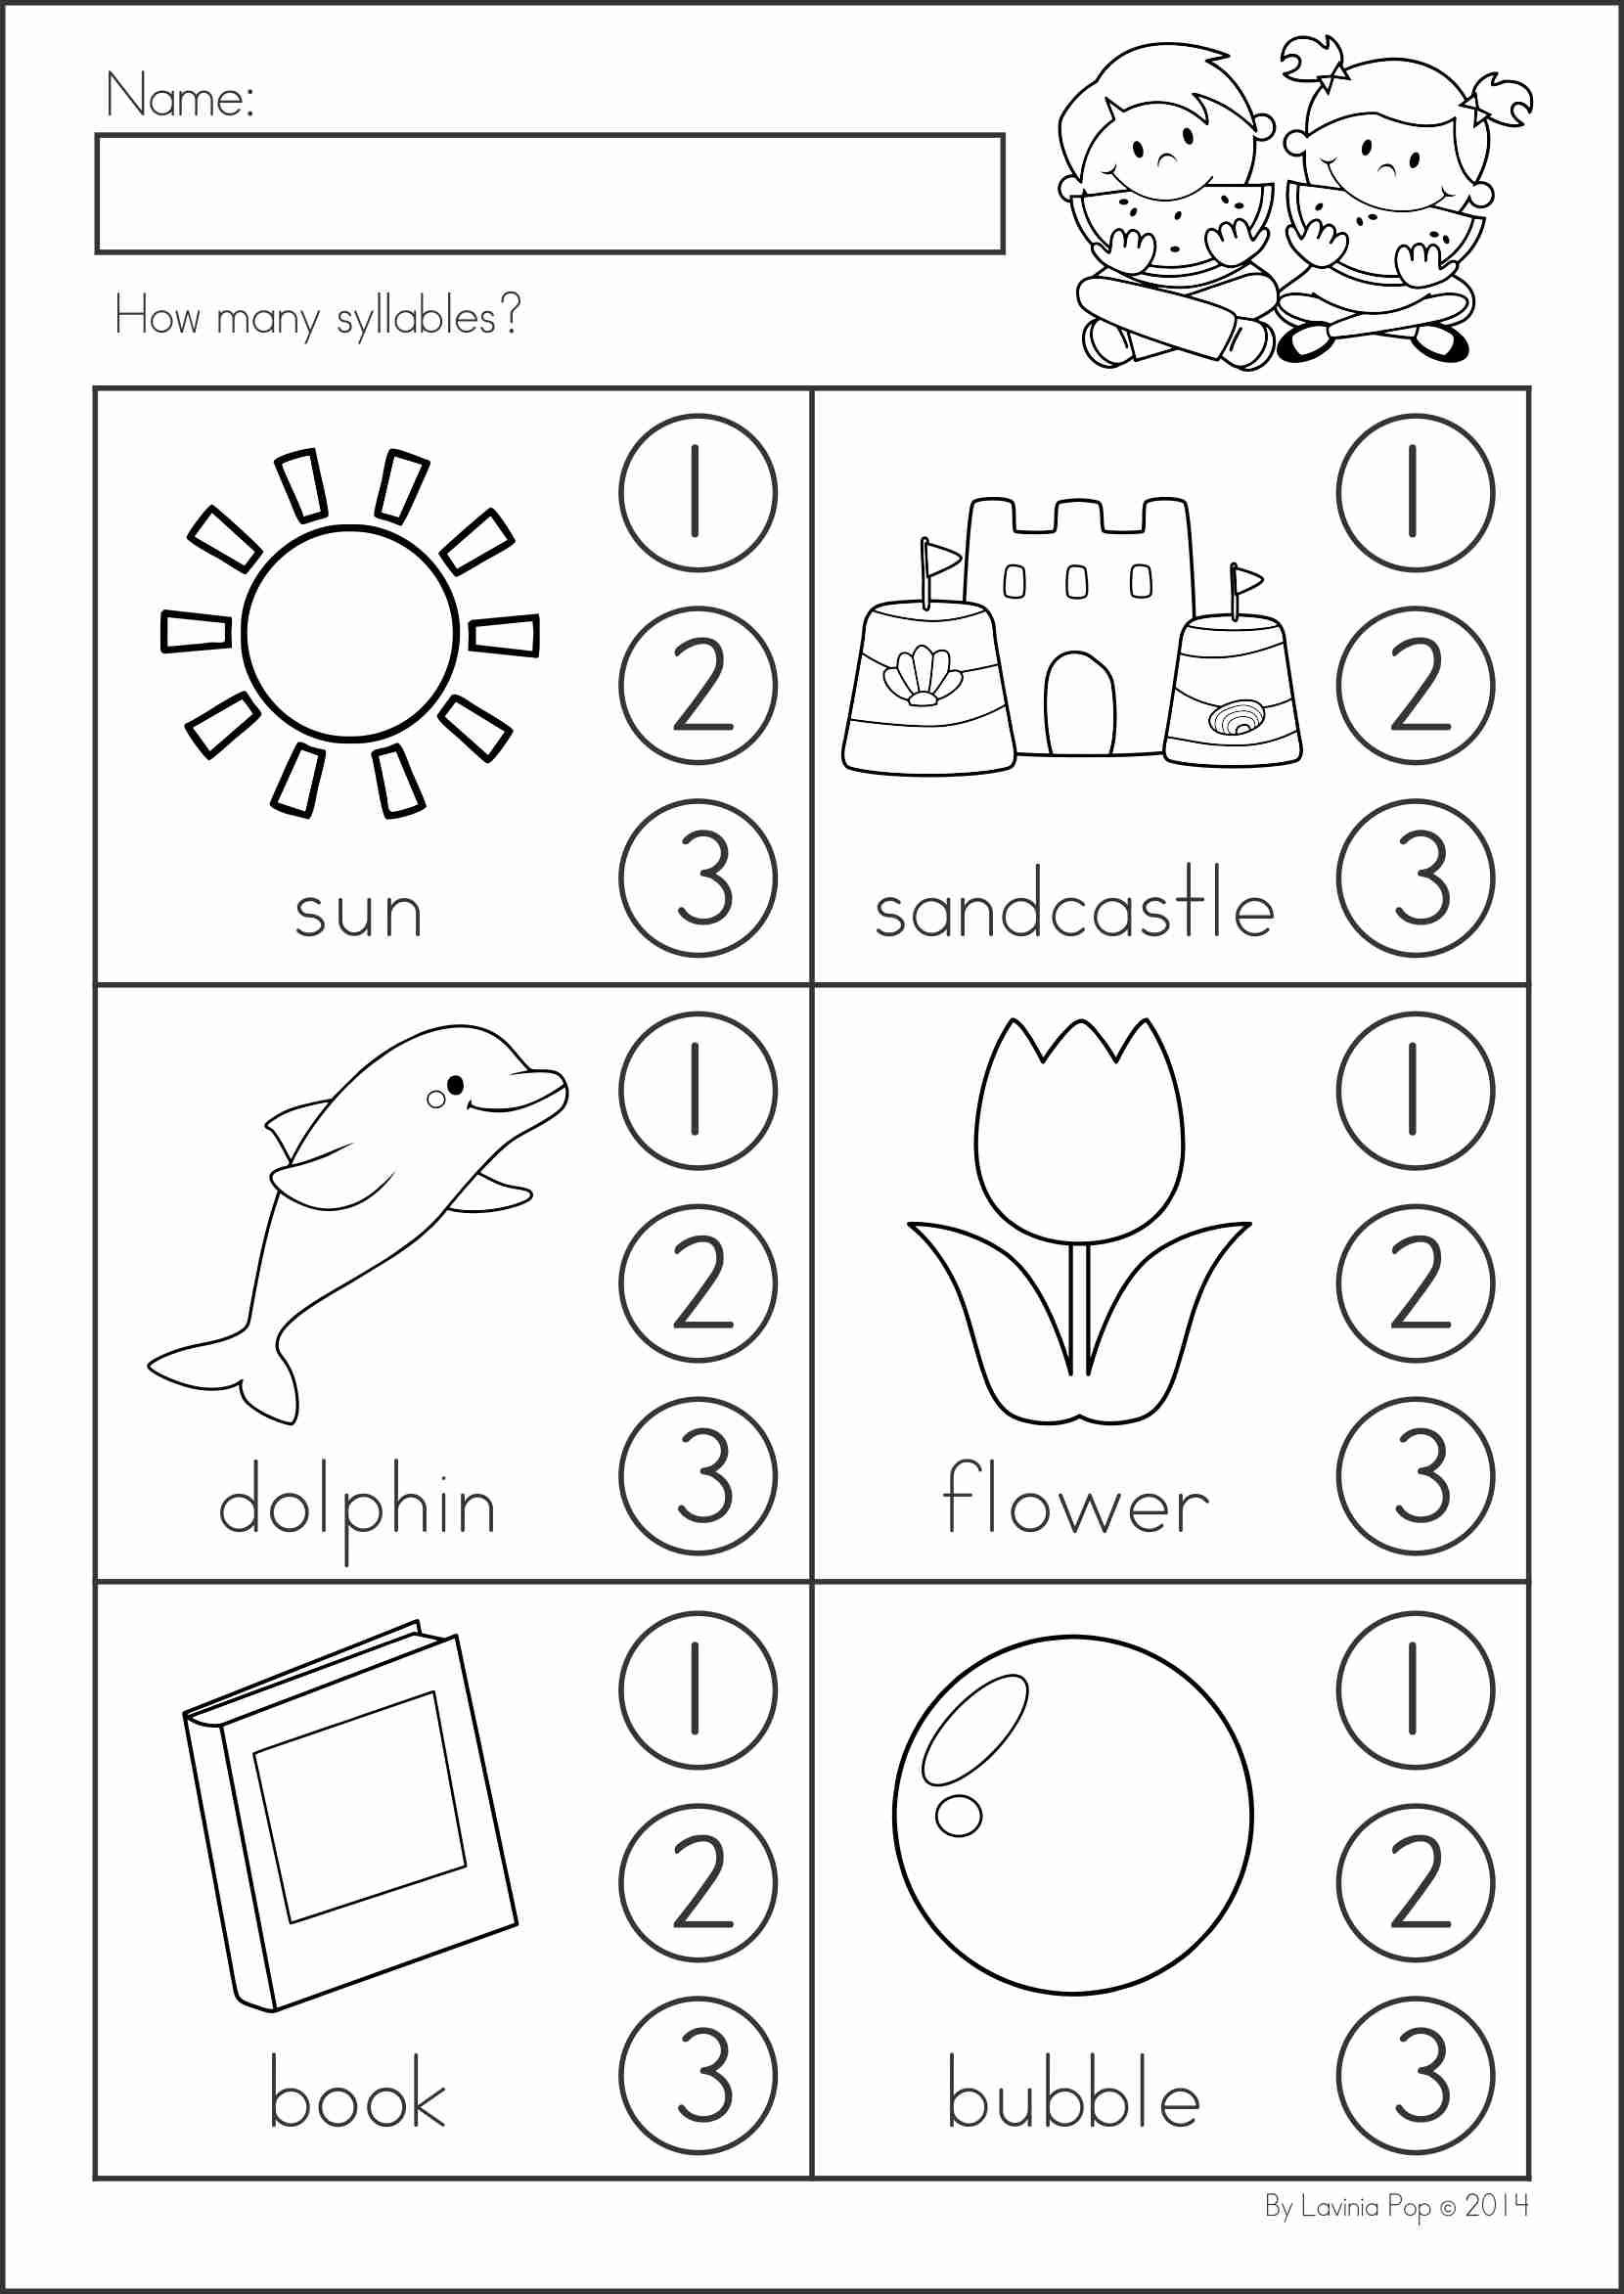 Kindergarten Worksheet On Syllables